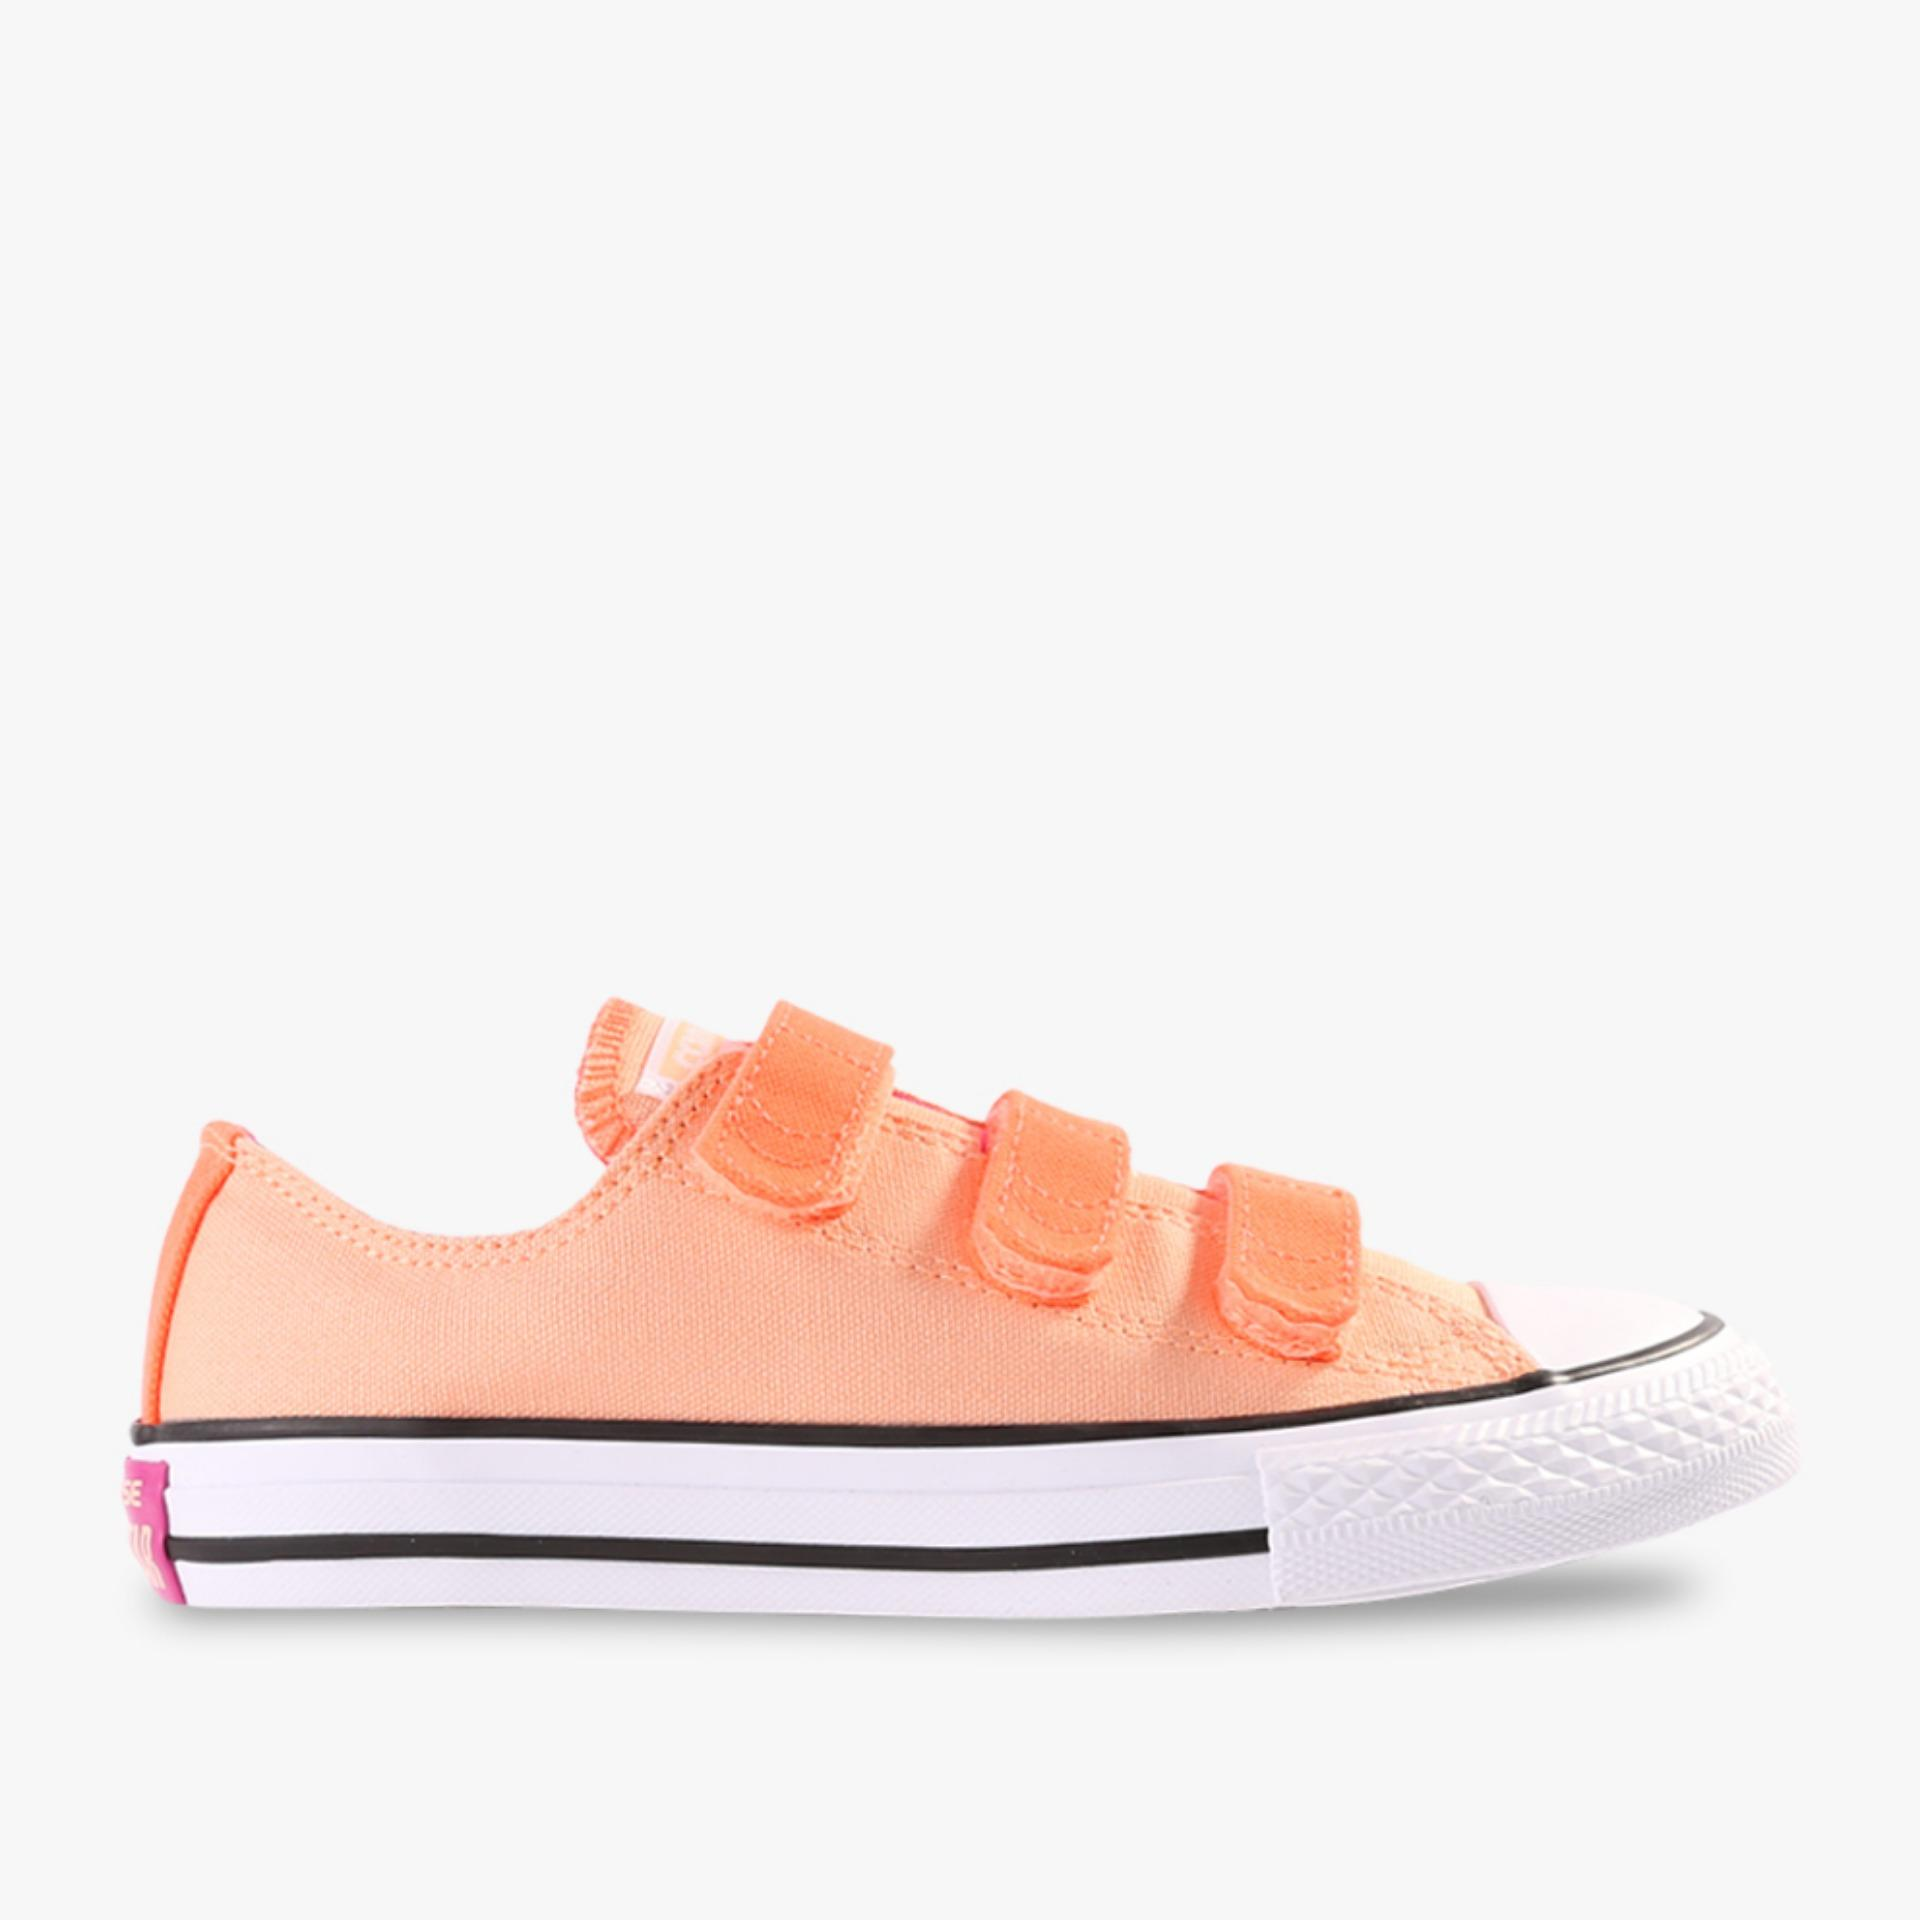 Beli Converse Chuck Taylor All Star 3V Ox Kids Sneakers Oranye Kredit